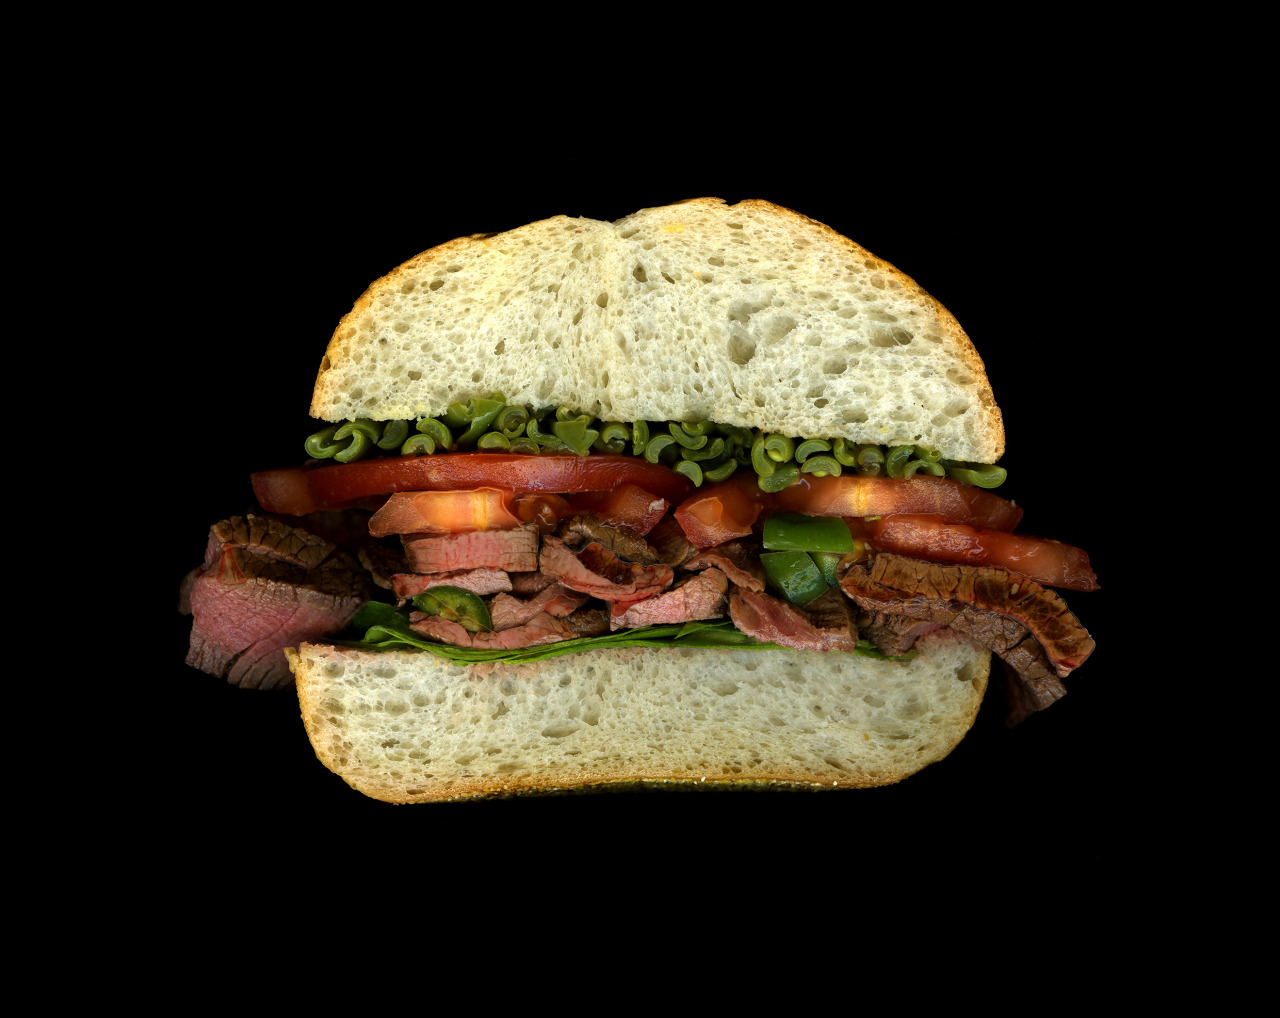 http://scanwiches.com/image/71024542646